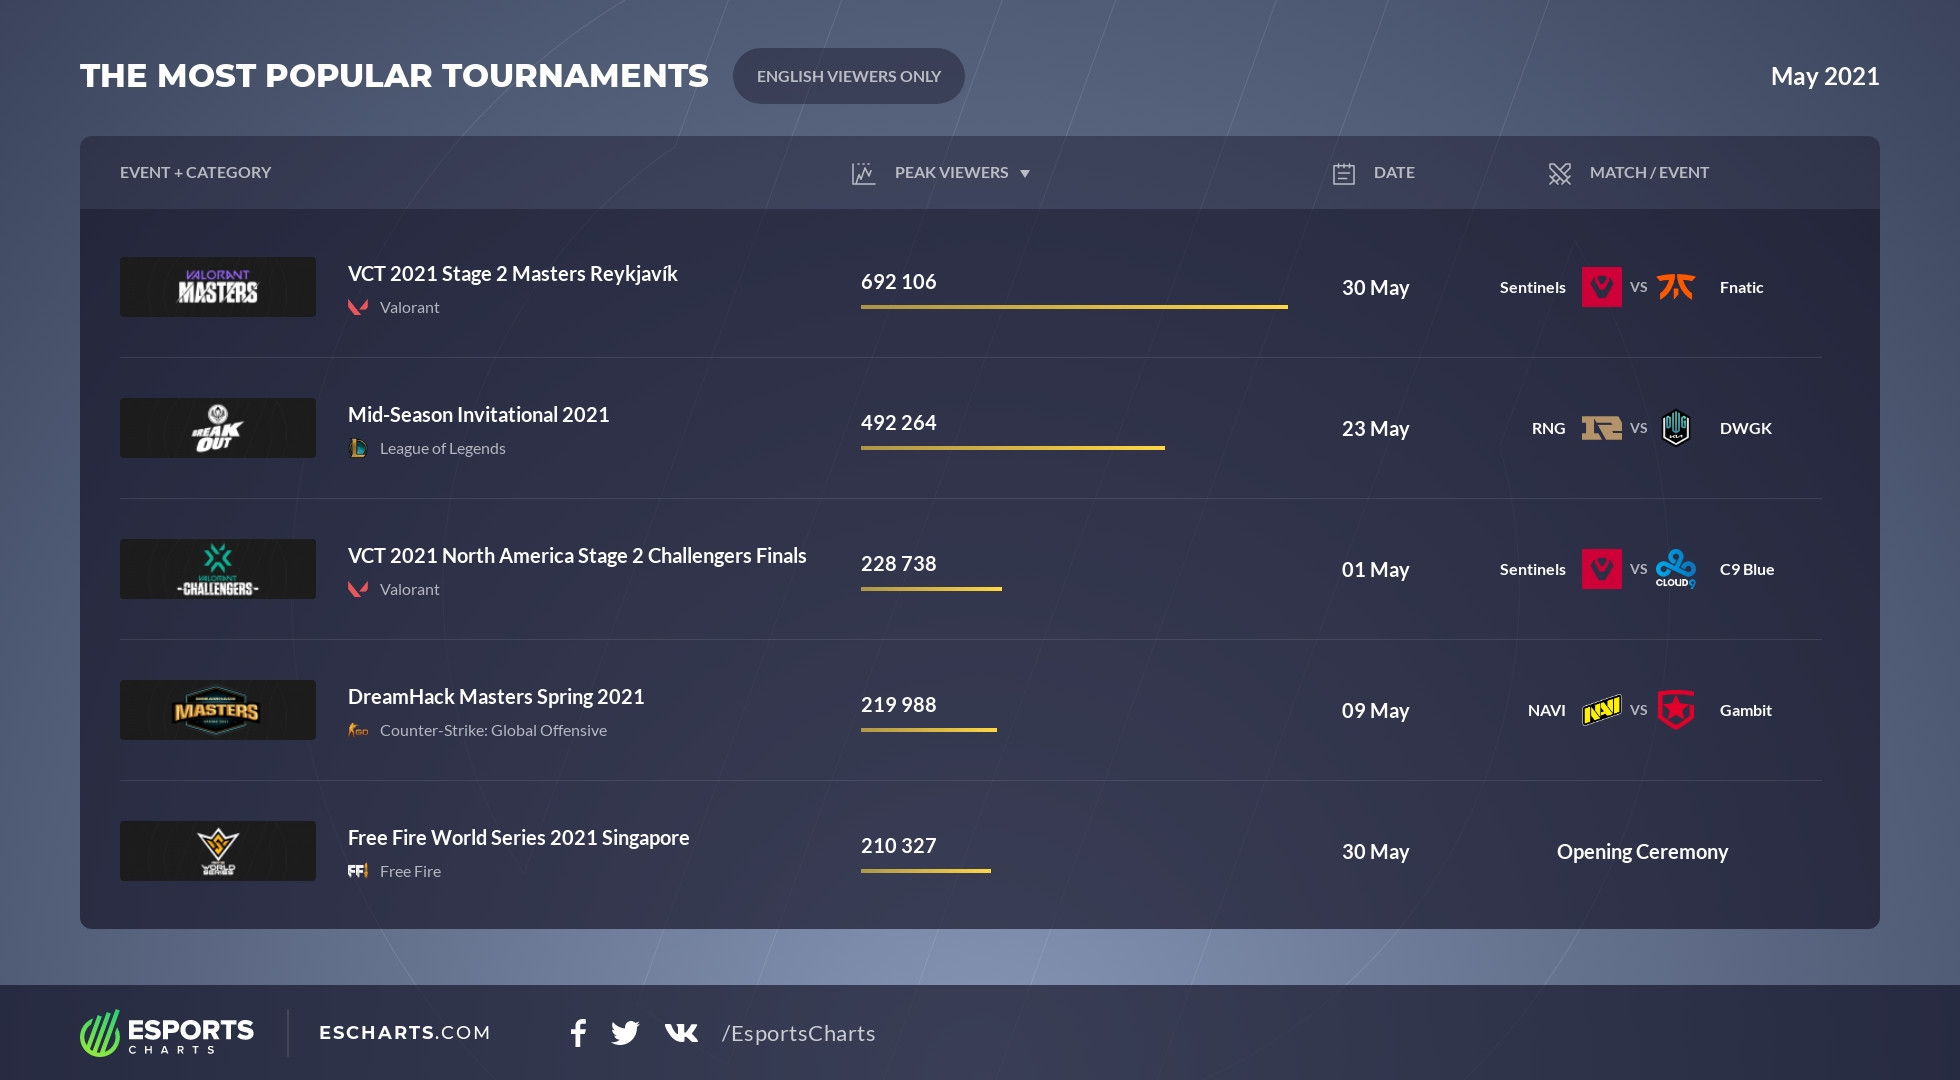 The most popular tournaments among English-speaking viewers